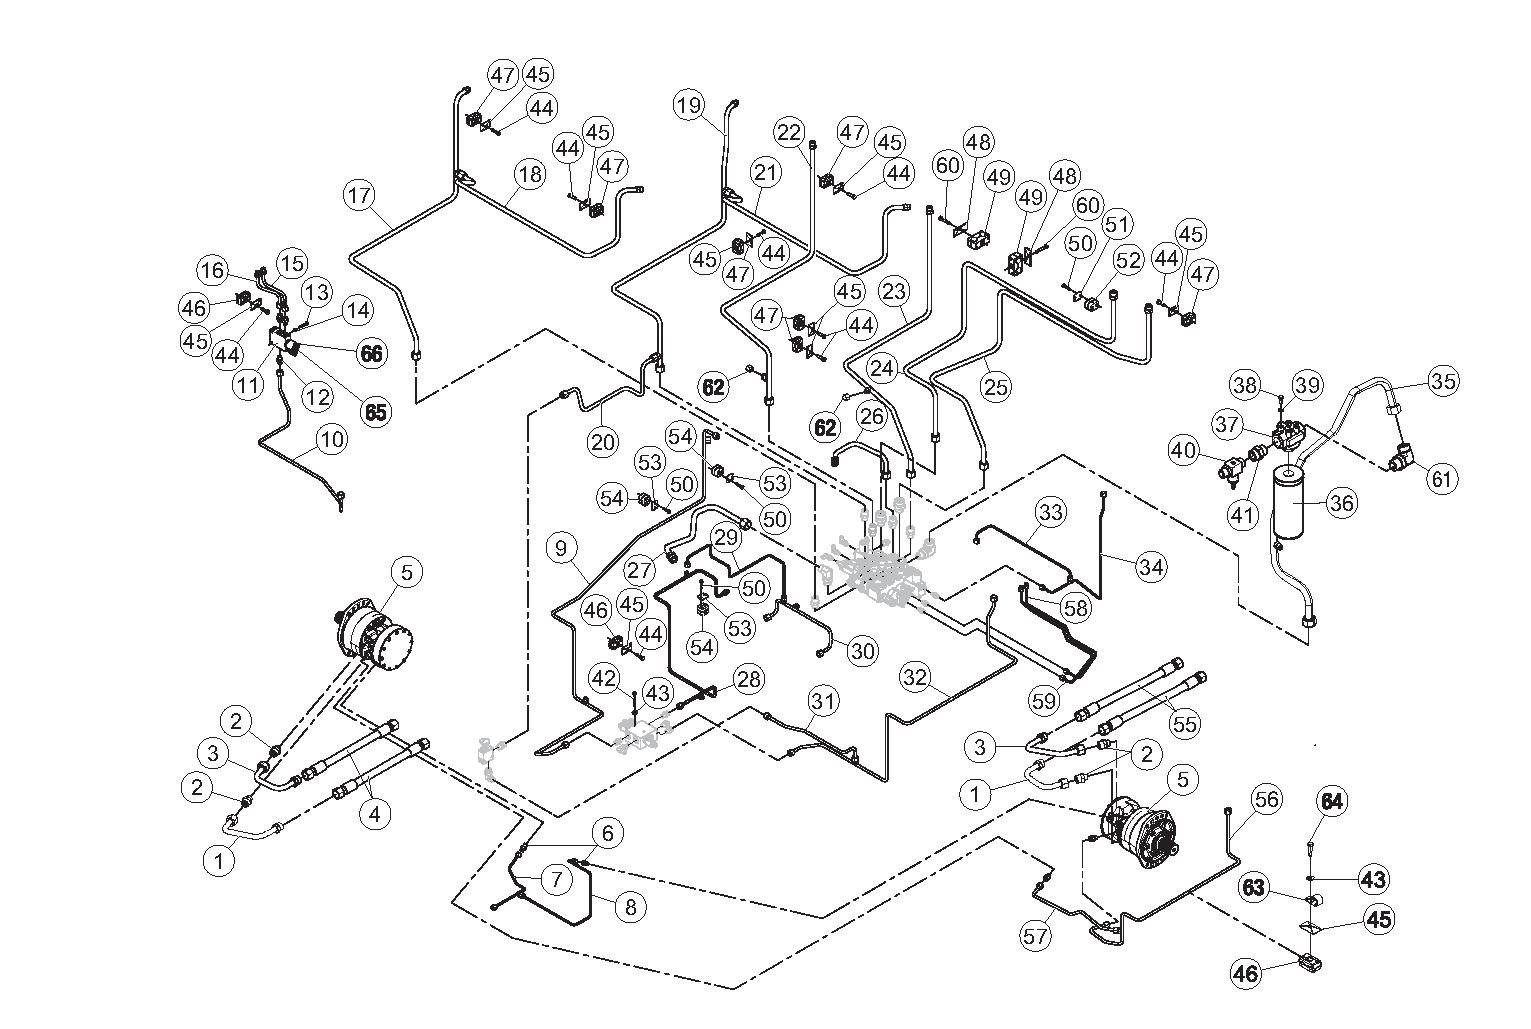 Diagram 14-A Hydraulic Control Assembly - Single Speed